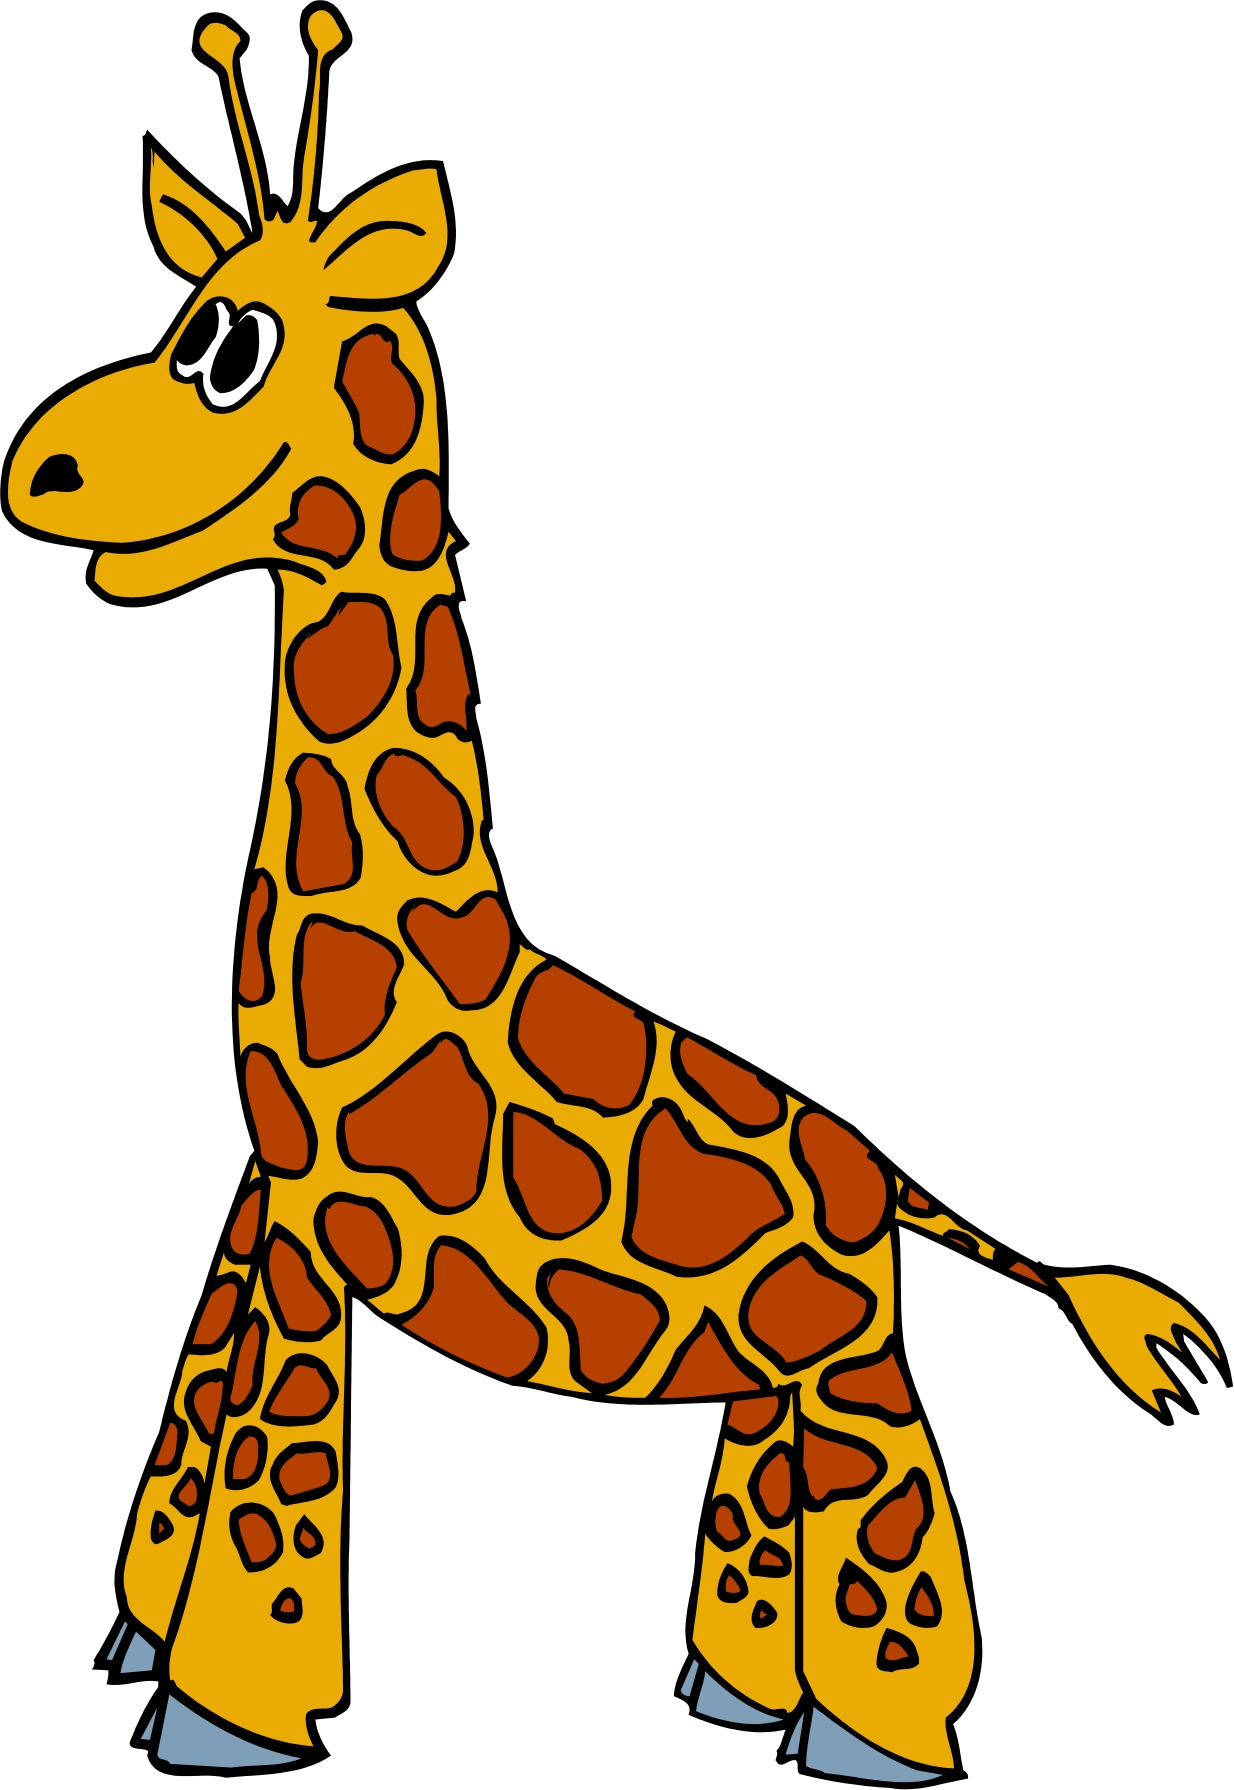 animated giraffe pictures clipart best clipart giraffe sleeping clipart giraffe sleeping